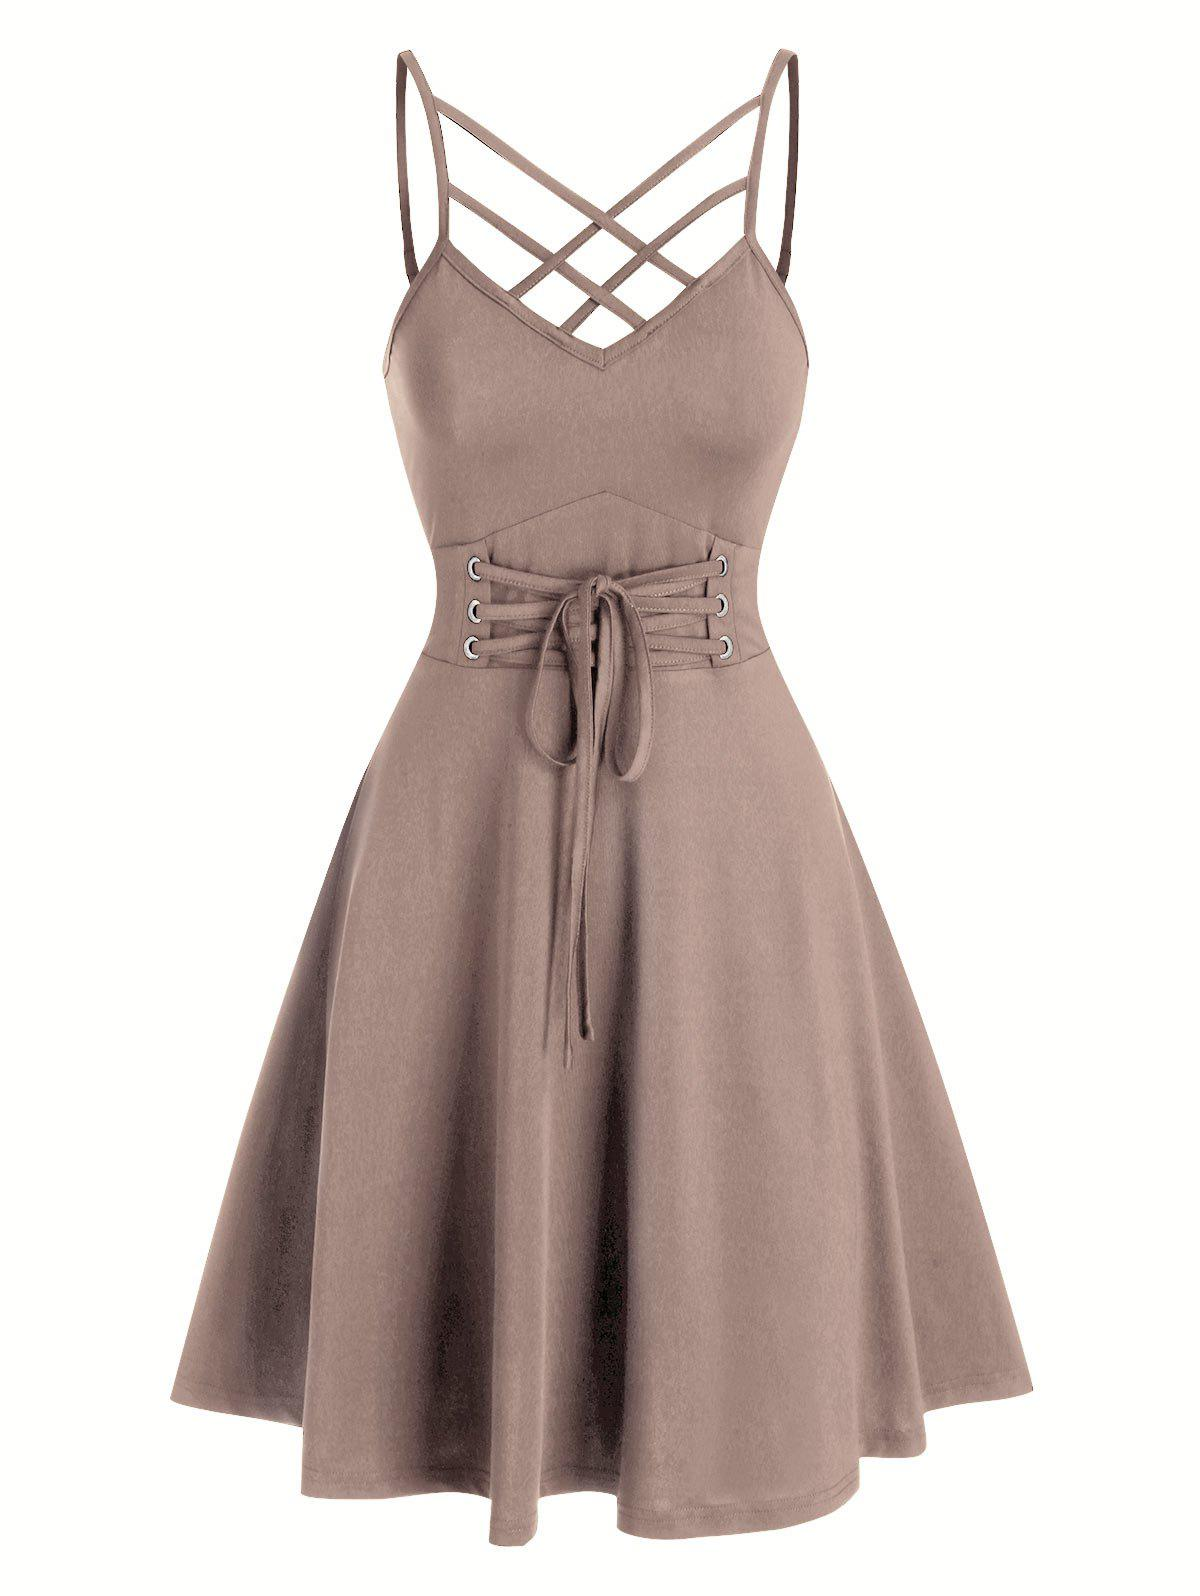 Front Strappy Lace Up Mini Cami Dress - LIGHT COFFEE M